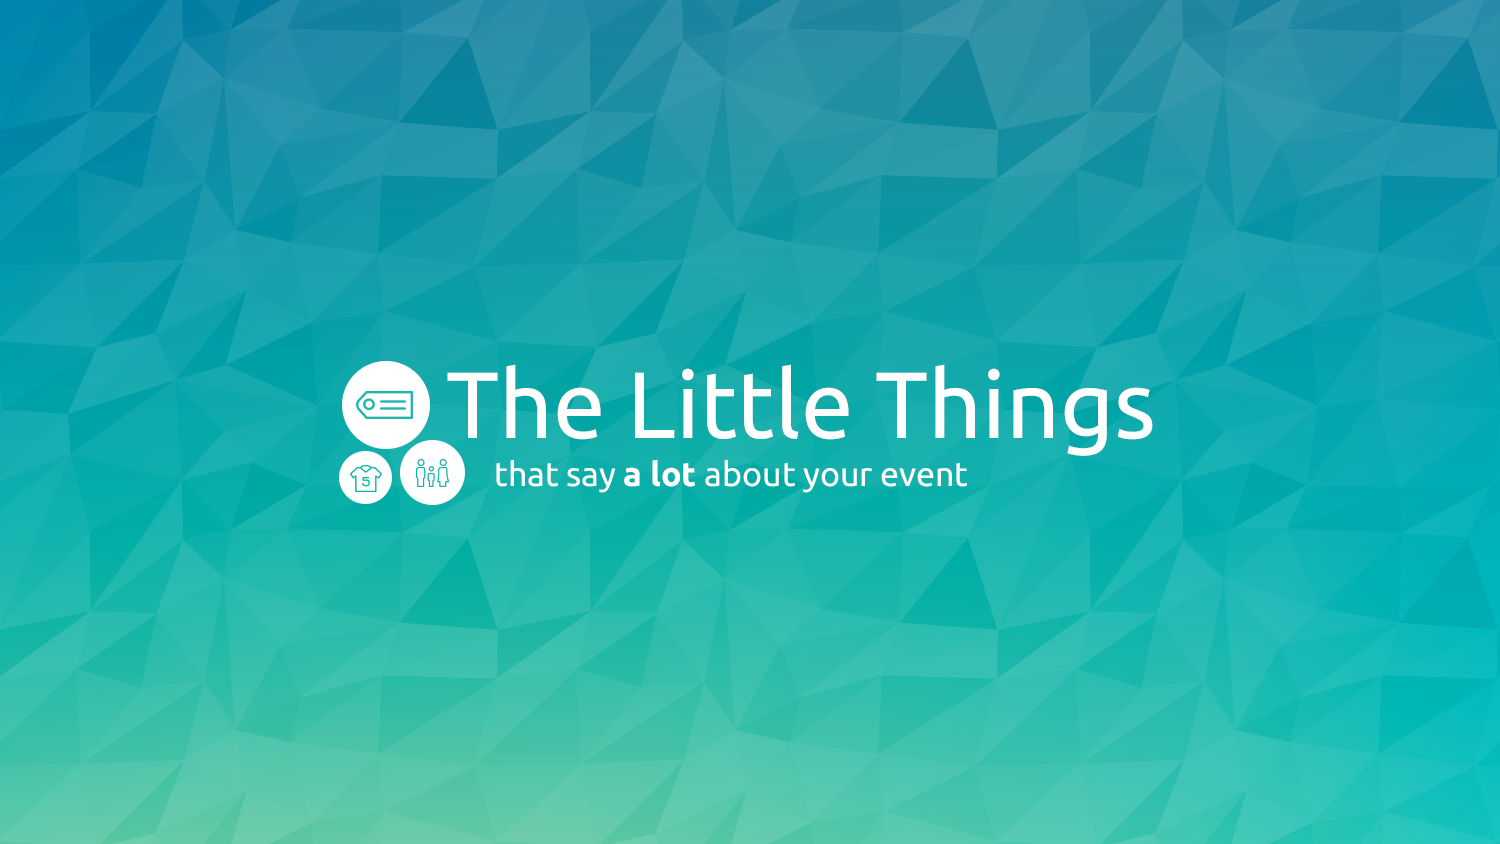 The little things graphic